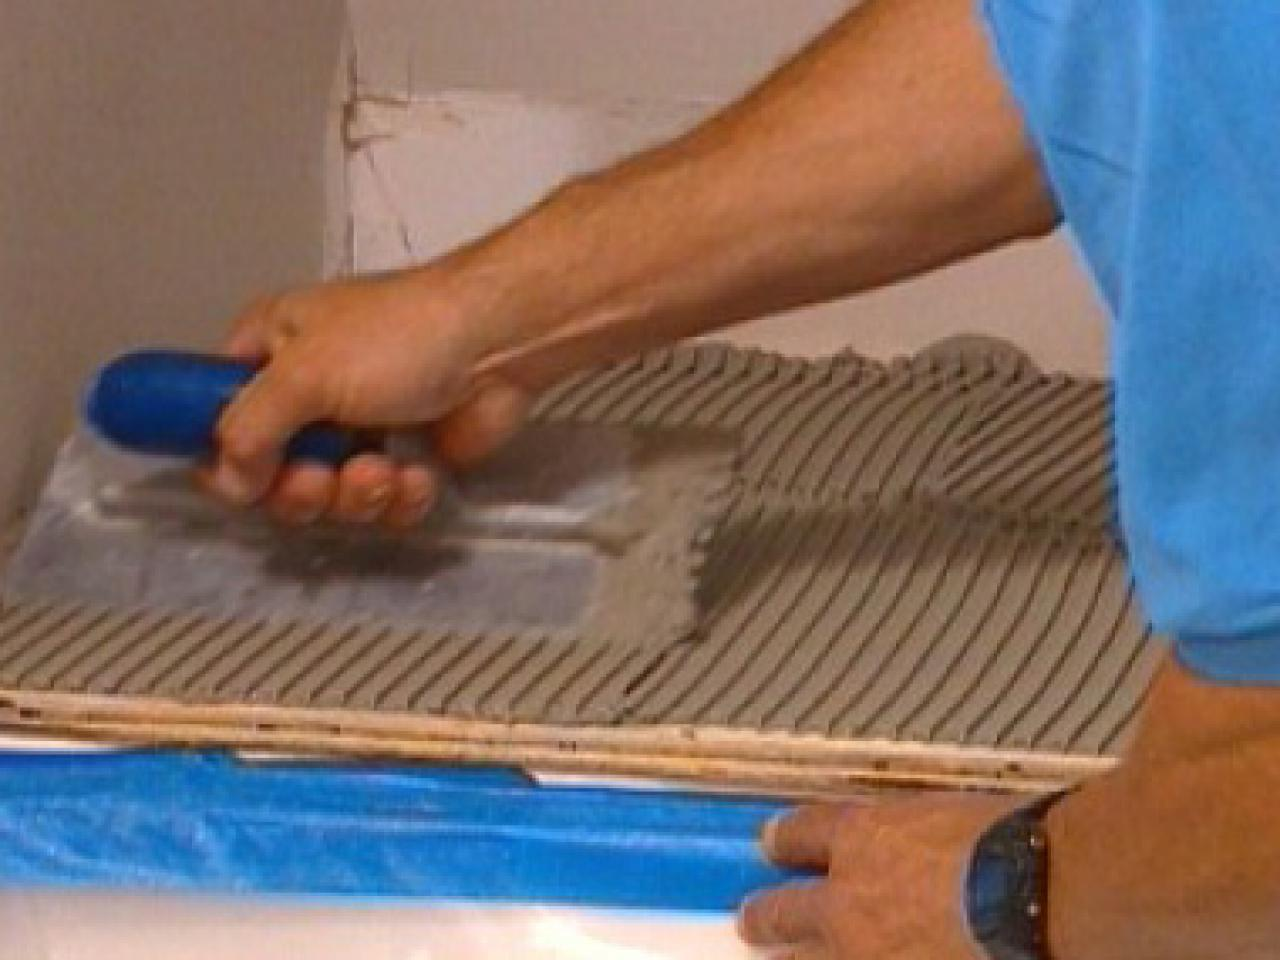 How To Install Tiles On A Kitchen Countertop How Tos Diy